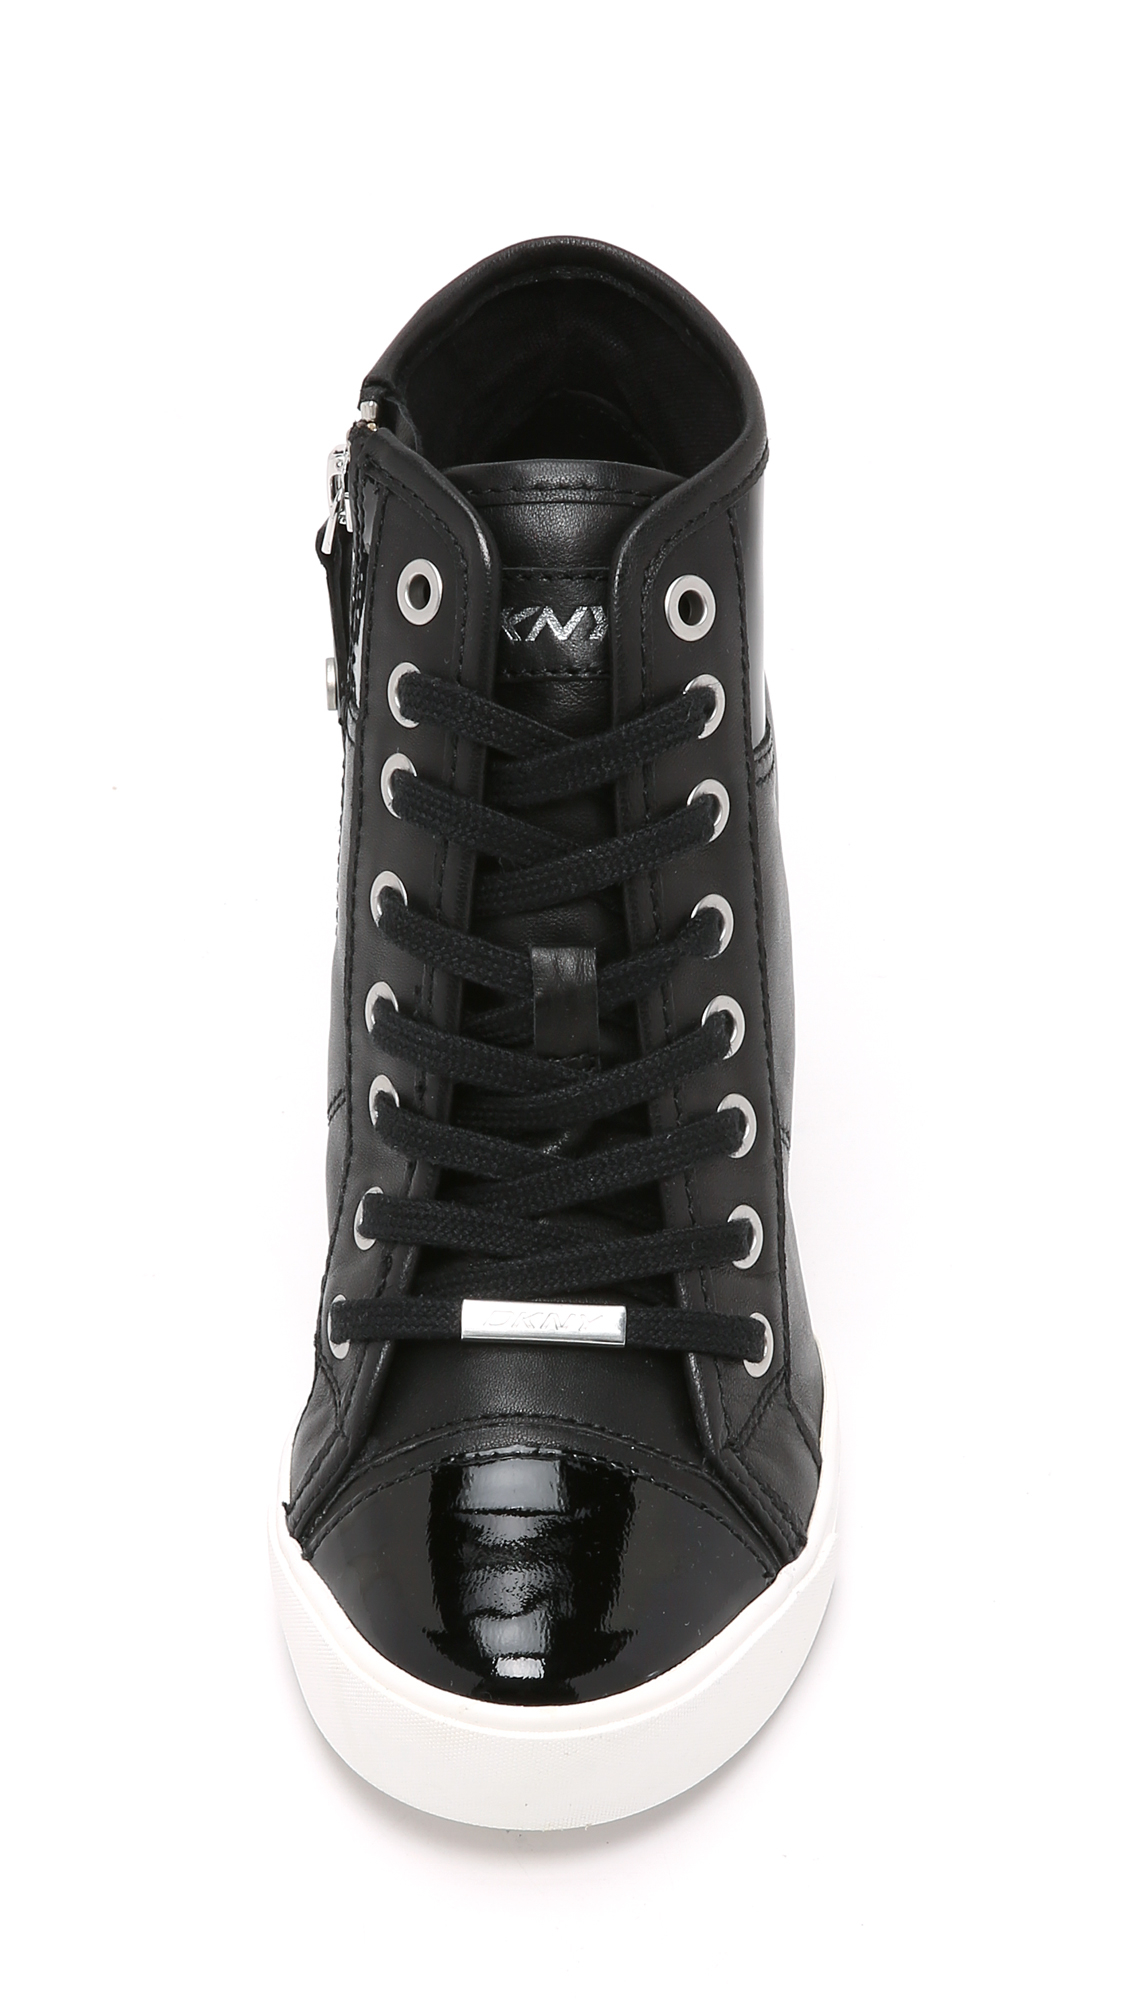 e40ea436d19 Lyst - DKNY Grommet Zip Wedge Sneakers in Black